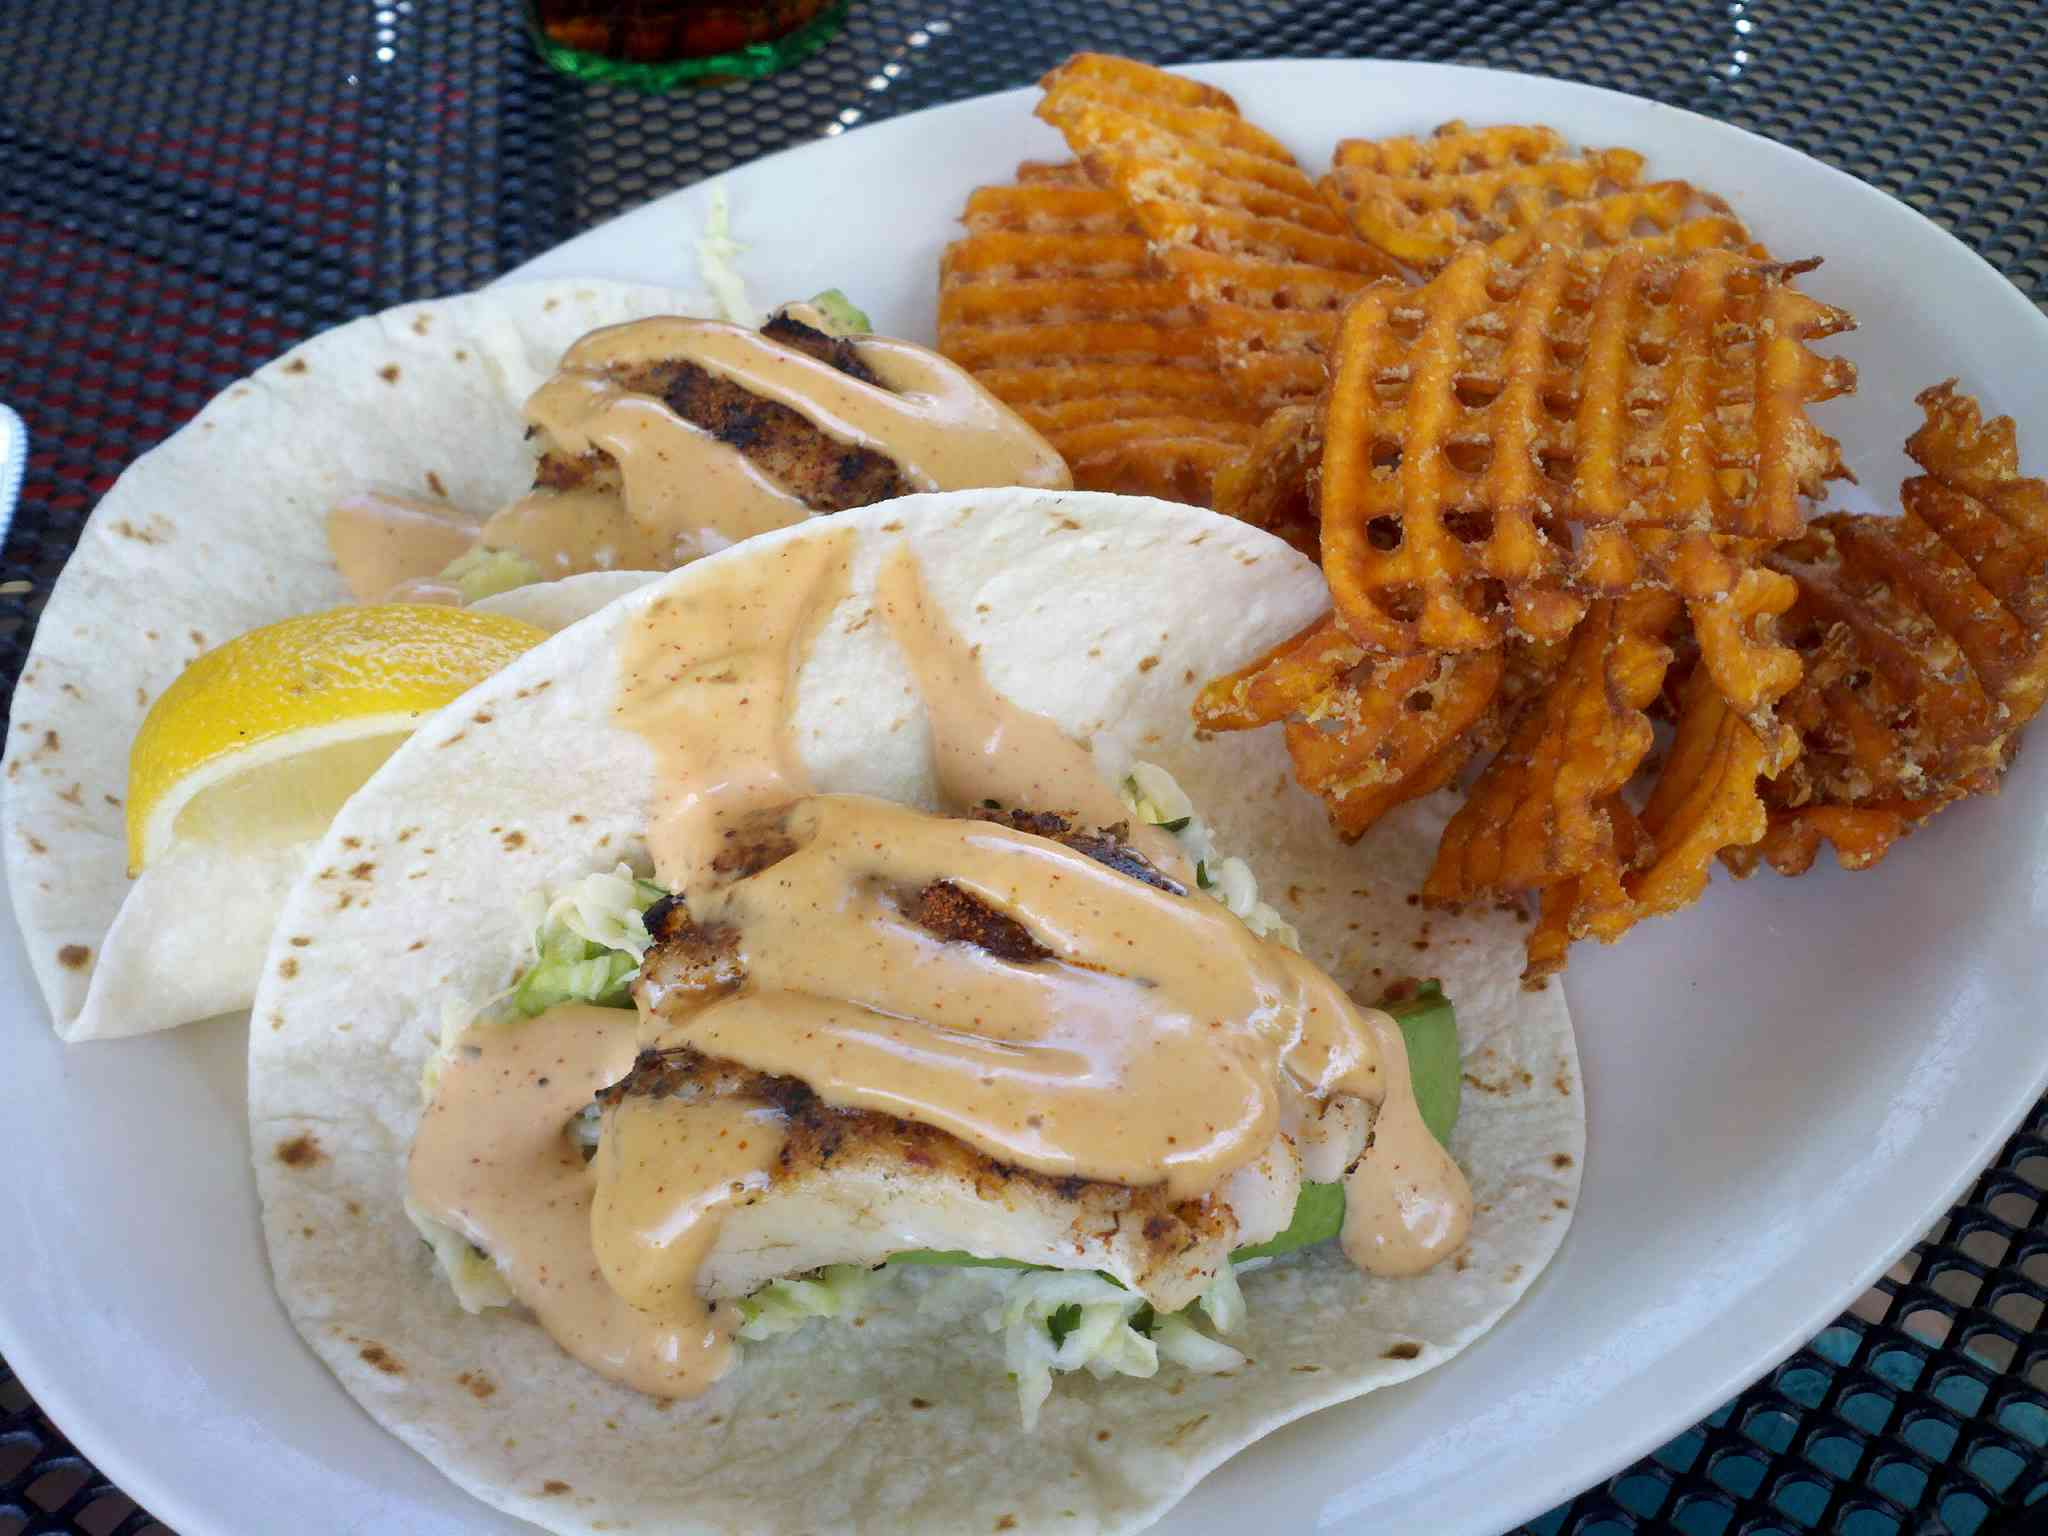 food selection - tacos and sweet potato fries